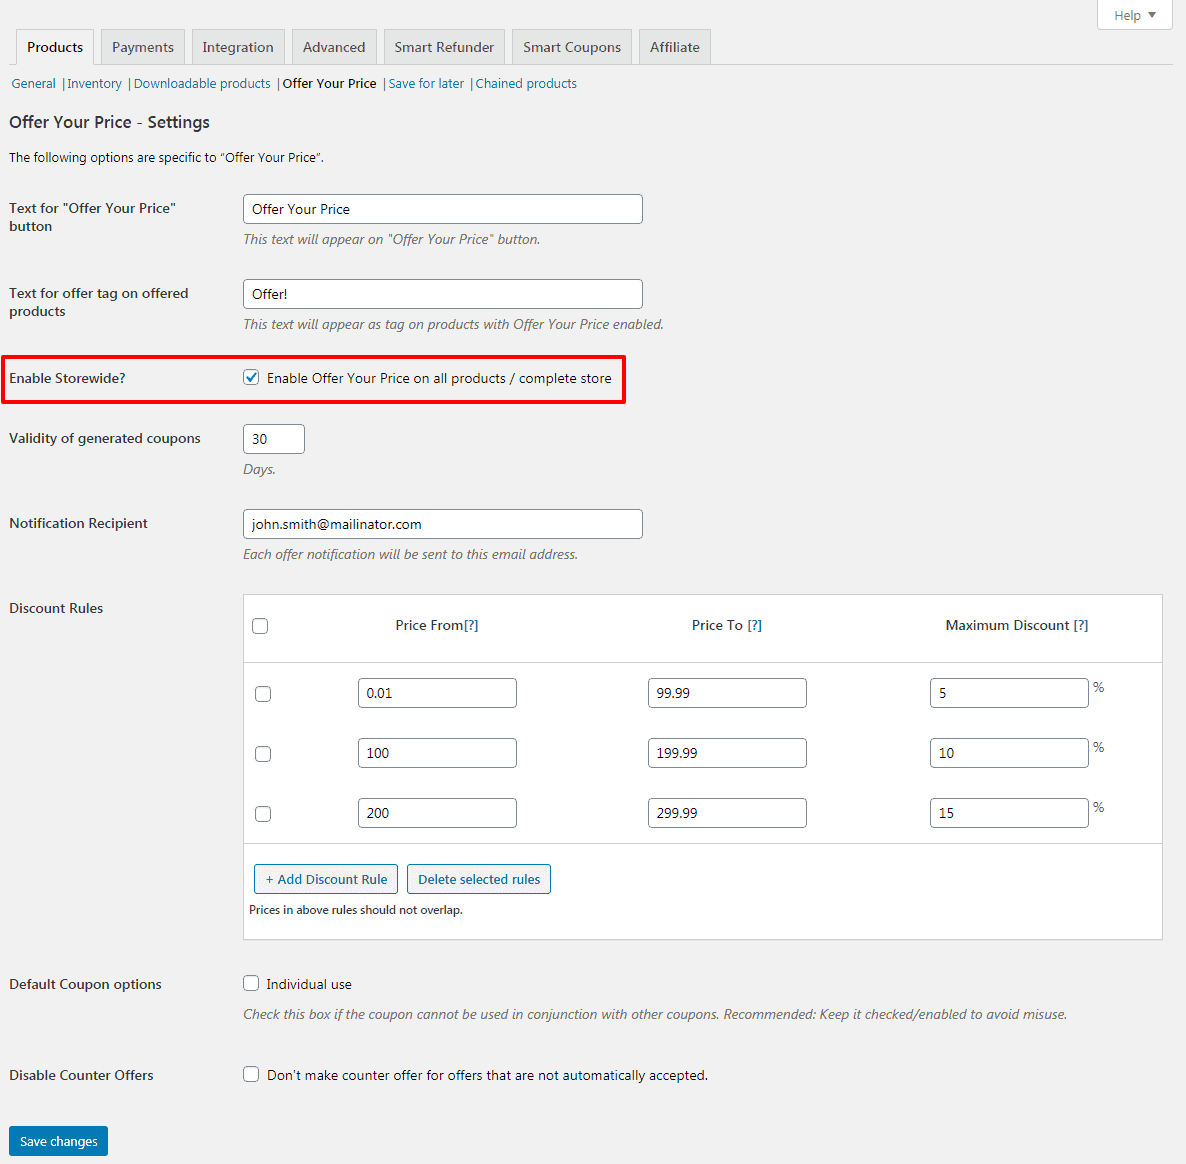 How to enable Storewide Settings